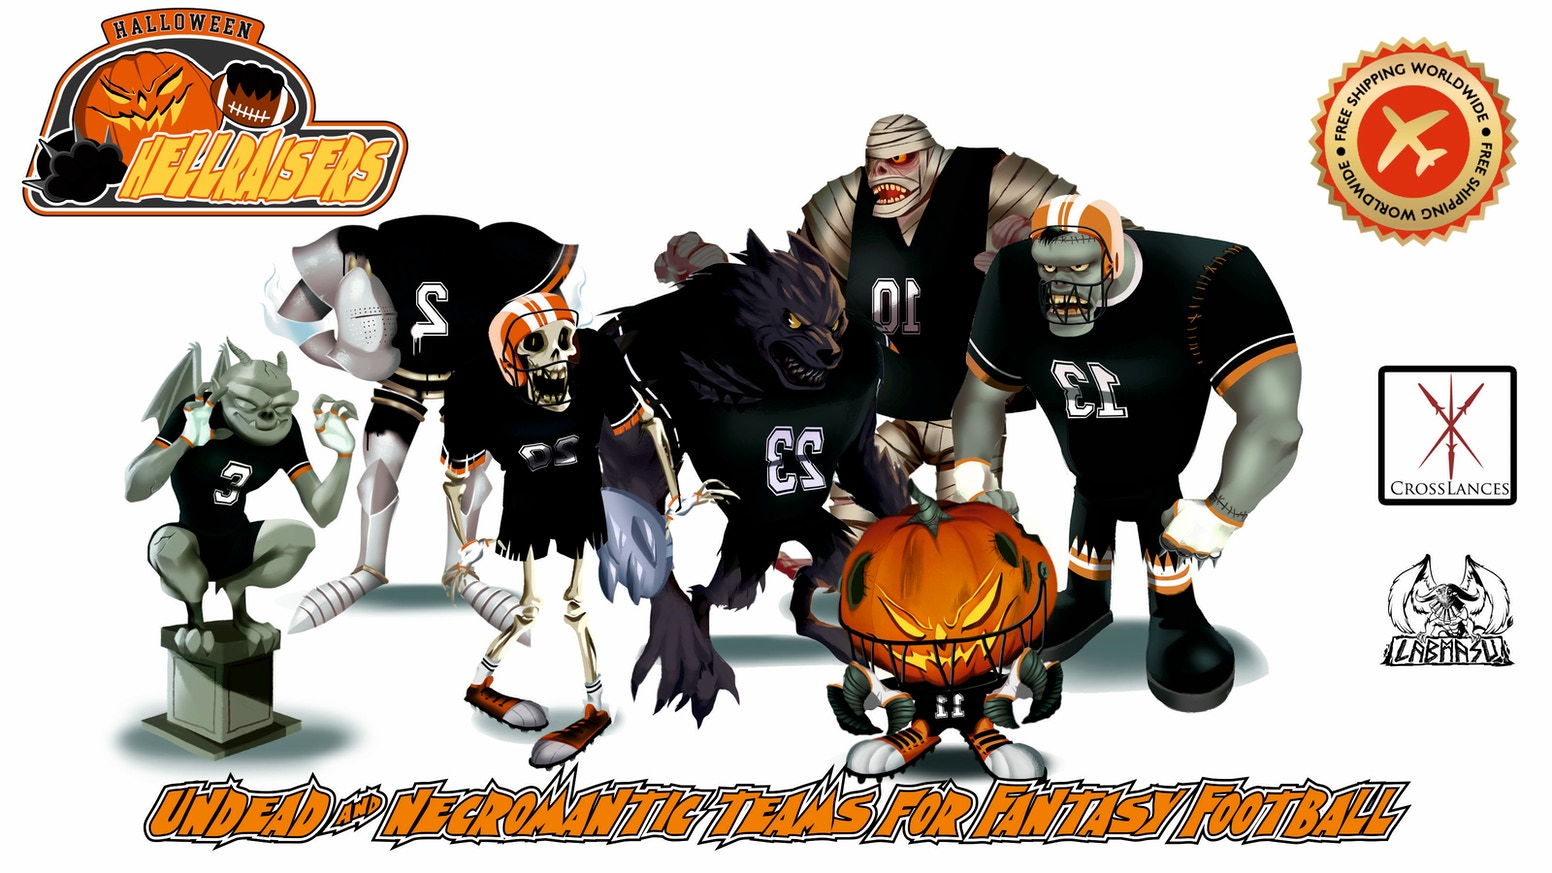 Cartoon style miniatures to play as Undead or Necromancer teams in the world famous Fantasy Football Tabletop game.